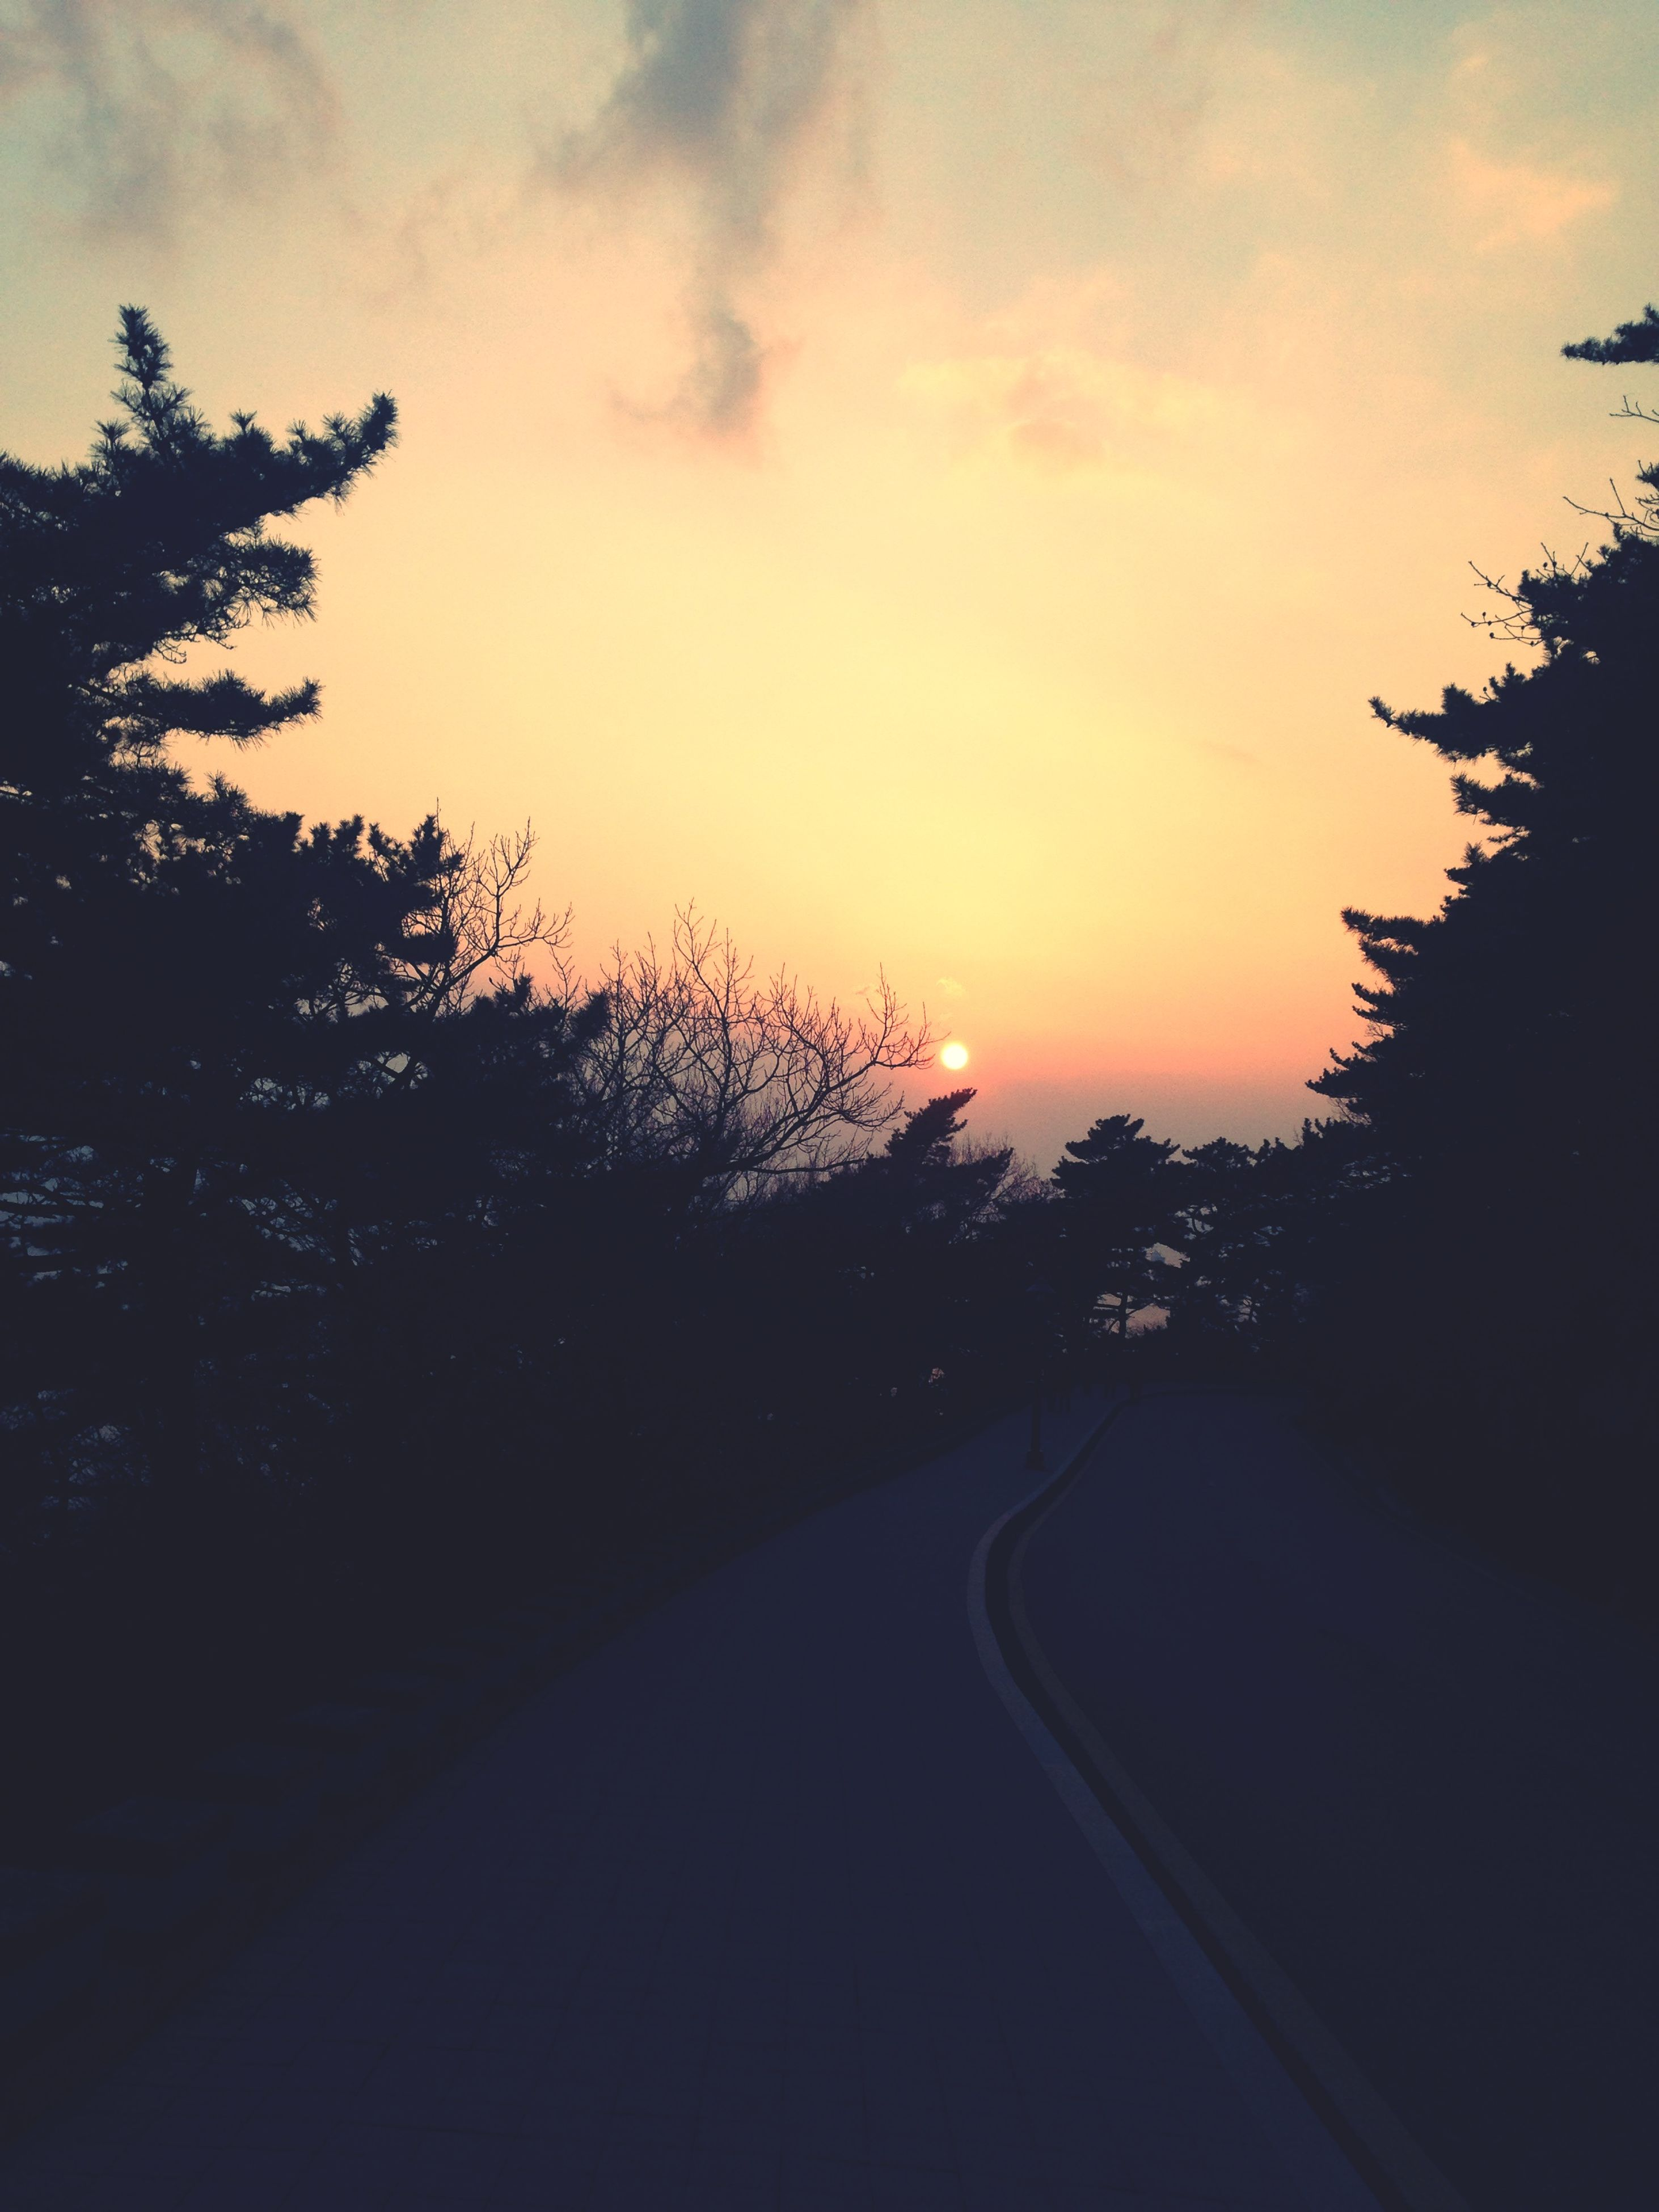 transportation, the way forward, road, sunset, sky, tree, silhouette, diminishing perspective, road marking, cloud - sky, vanishing point, tranquility, country road, nature, car, street, tranquil scene, beauty in nature, cloud, dusk